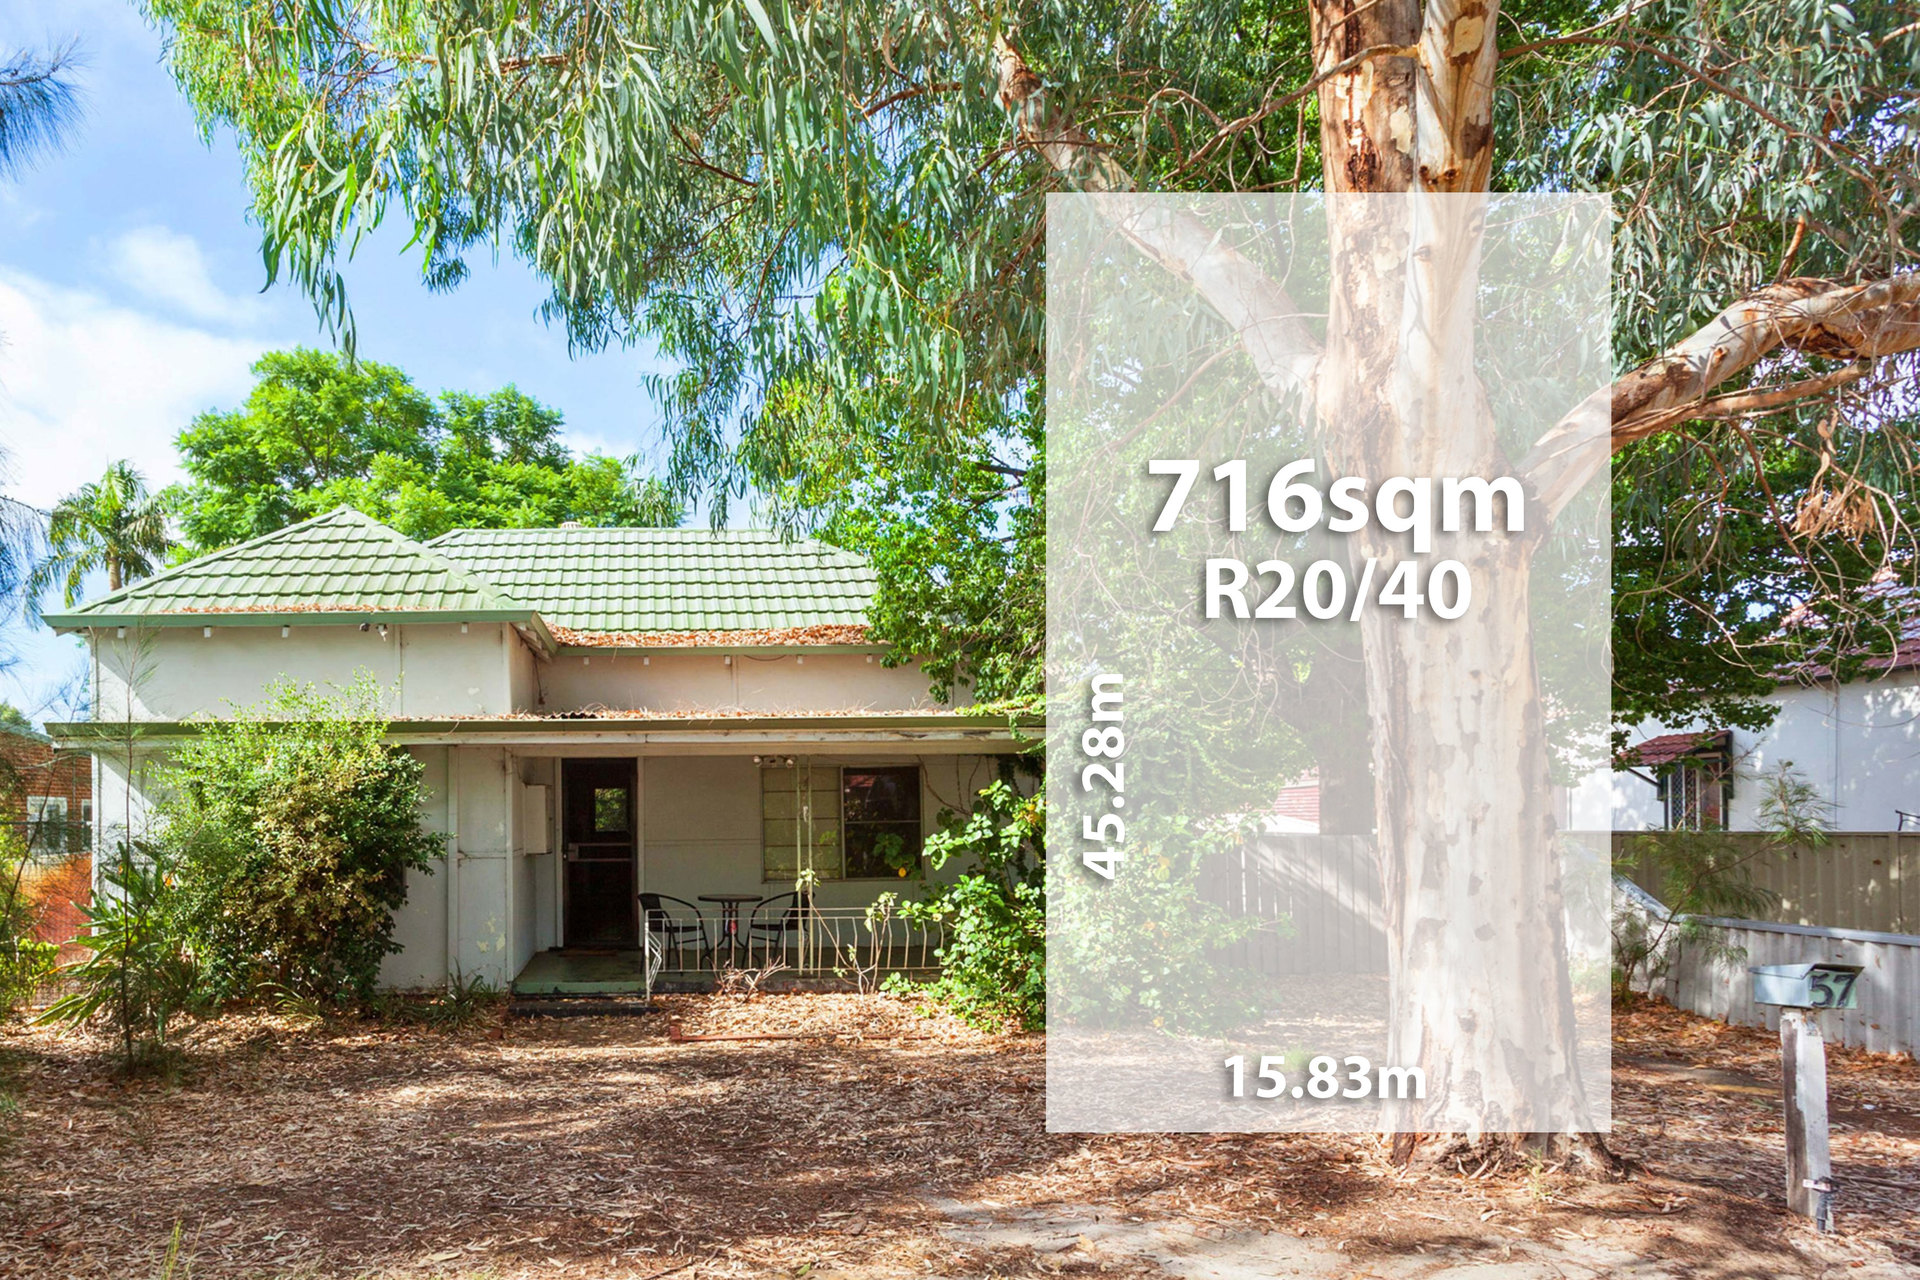 57 Kooyong Road Rivervale